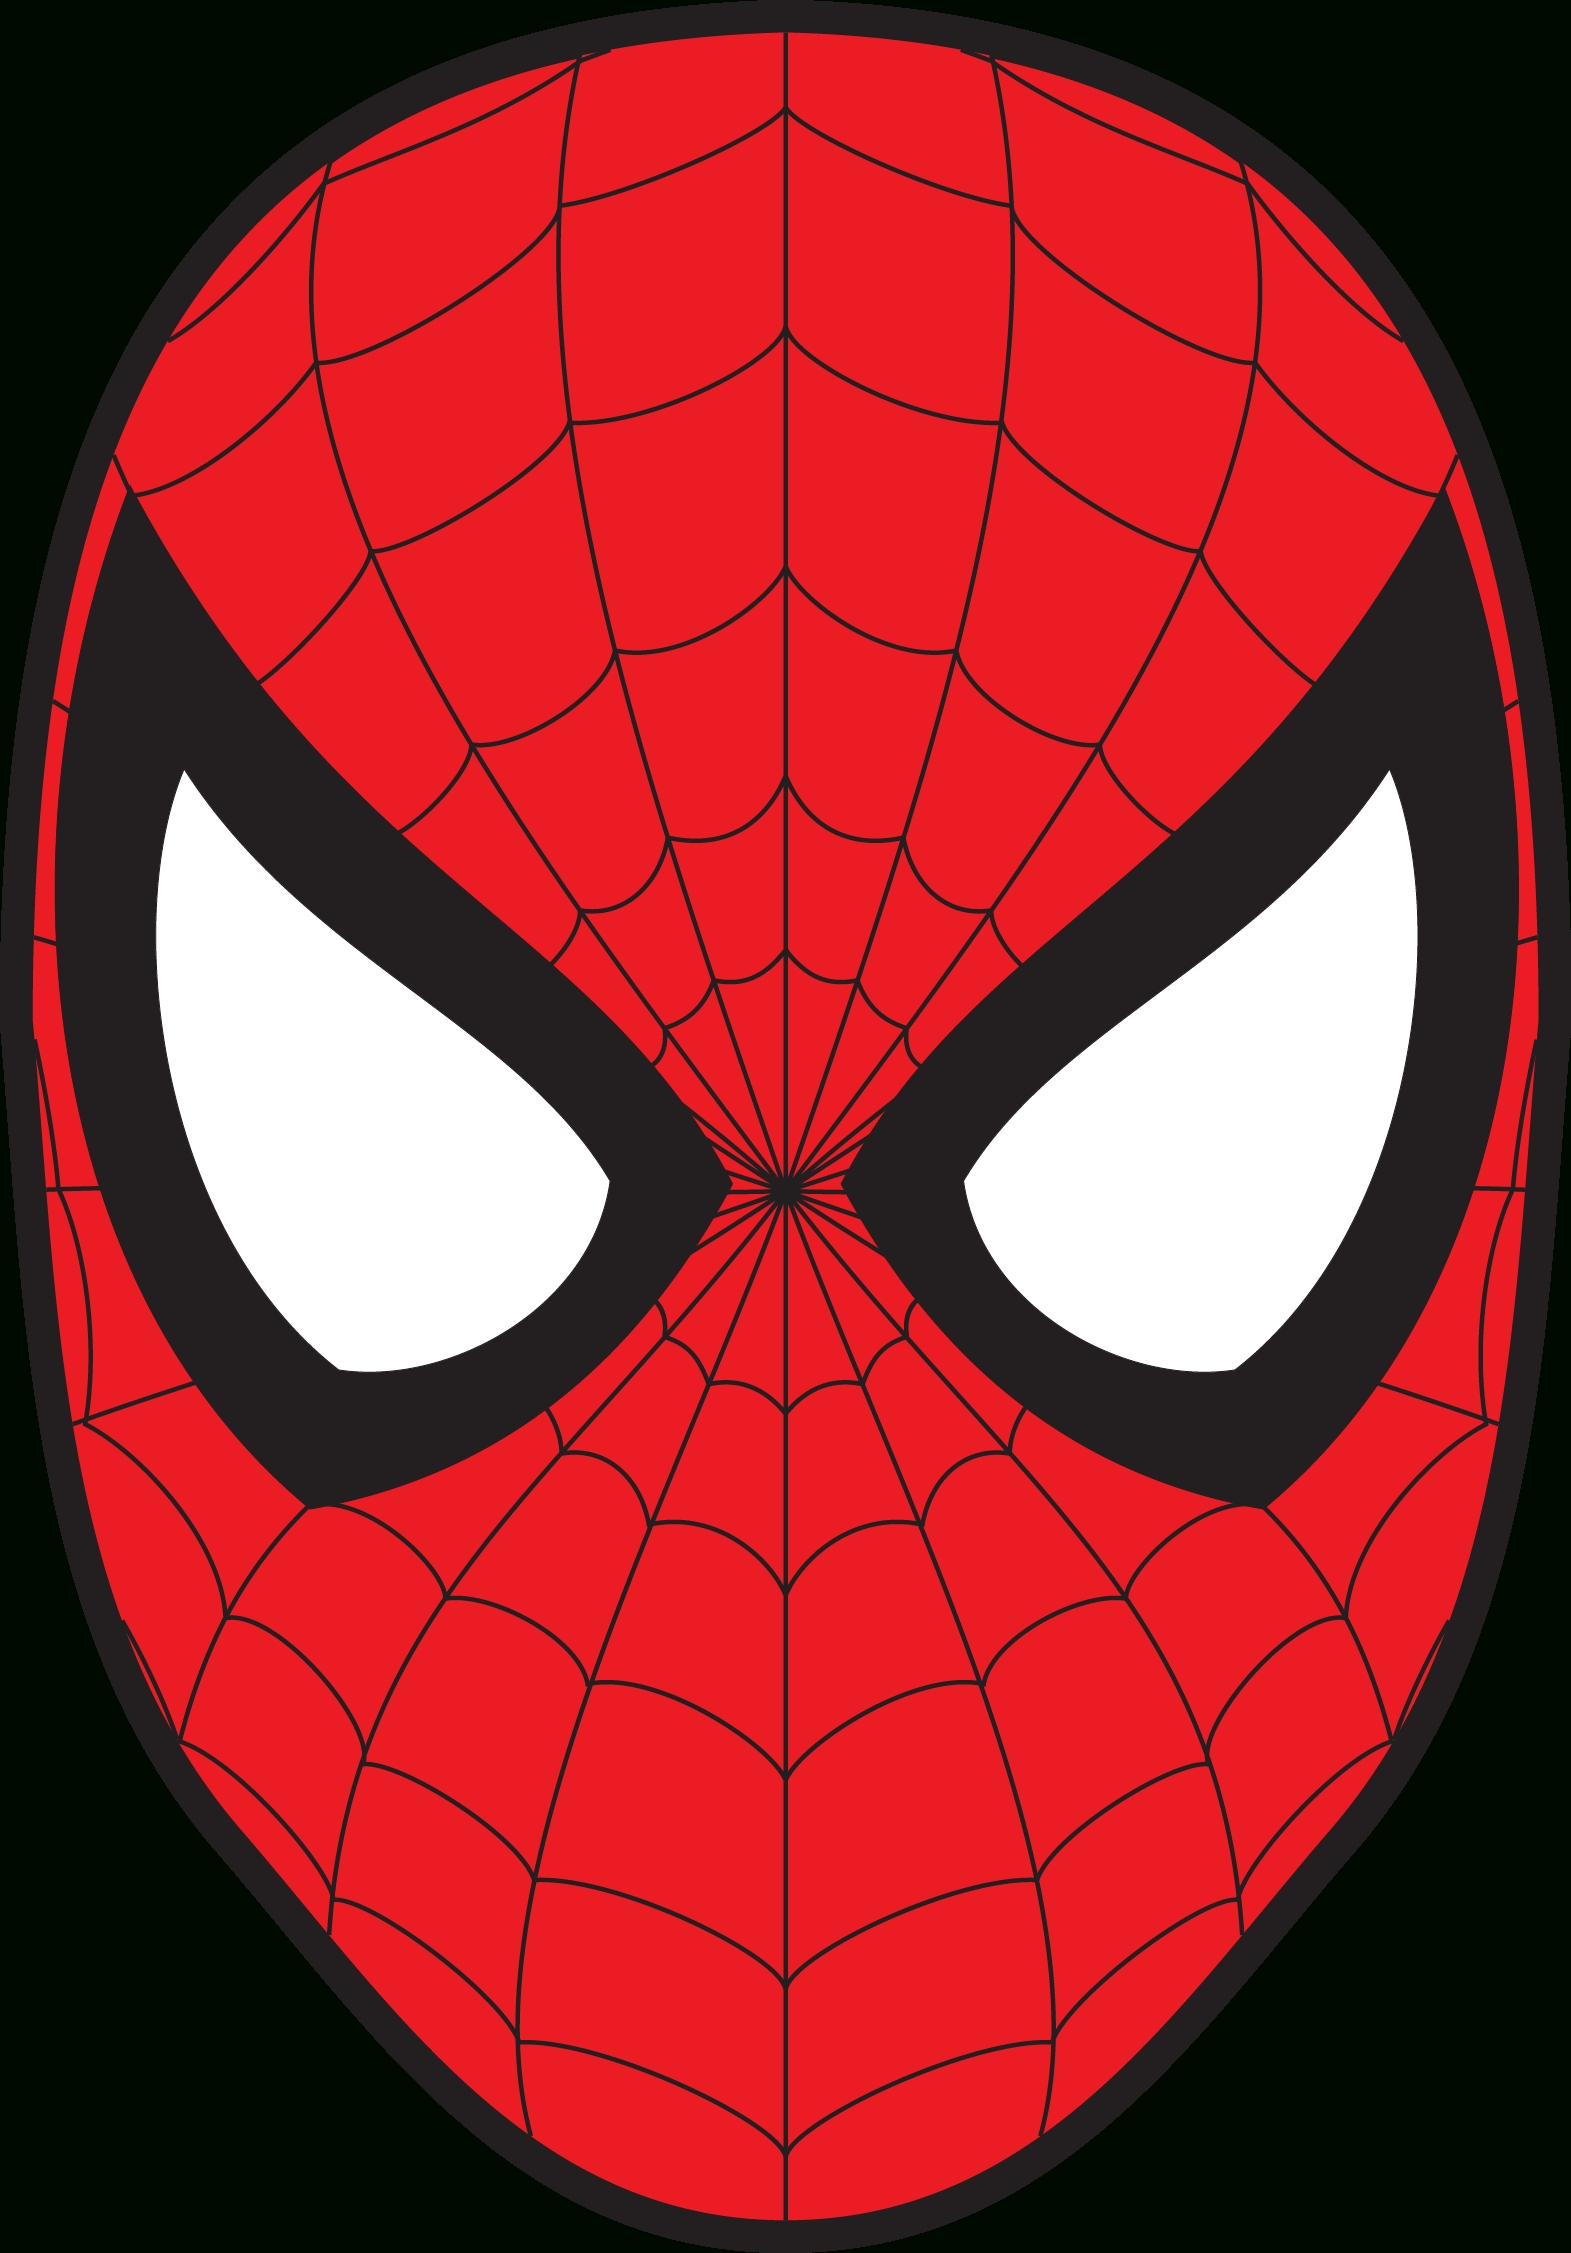 spider-man logo [pdf] vector eps free download, logo, icons, clipart